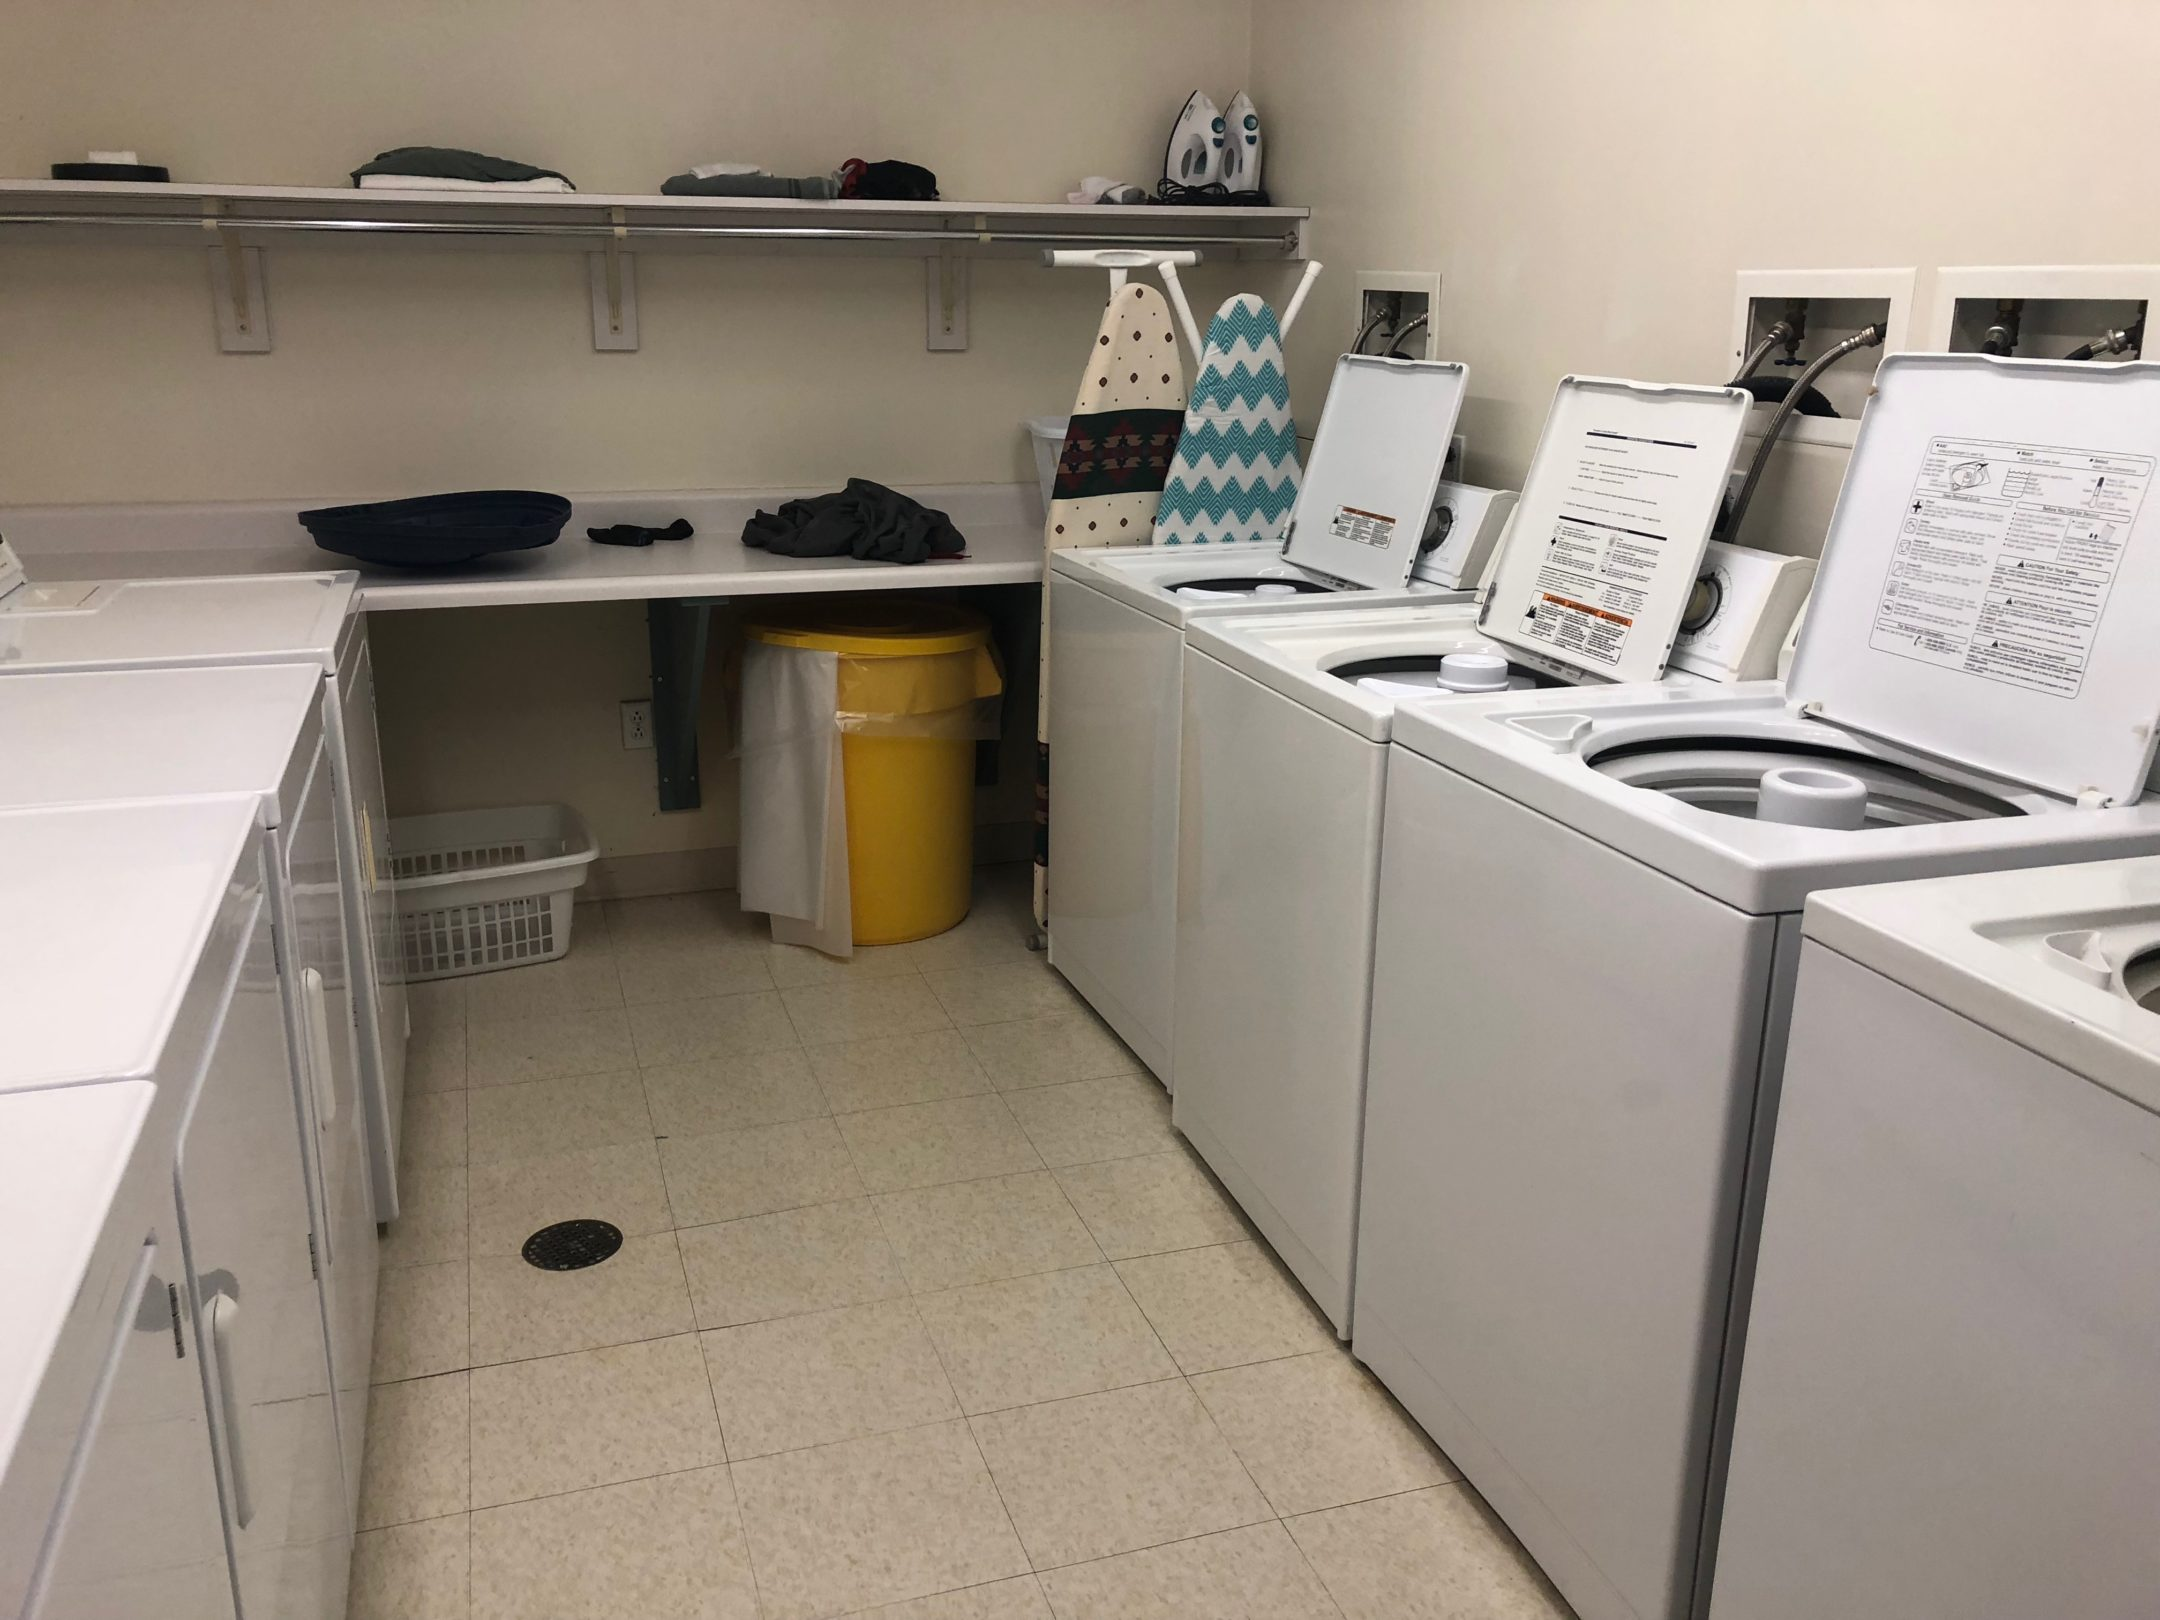 Wall along right has 4 white washing machines with lids open. Left side is 4 dryers. Back wall is table for folding clothes and 2 ironing boards. A rack with a shelf for storage and a rod for hanging clothes.